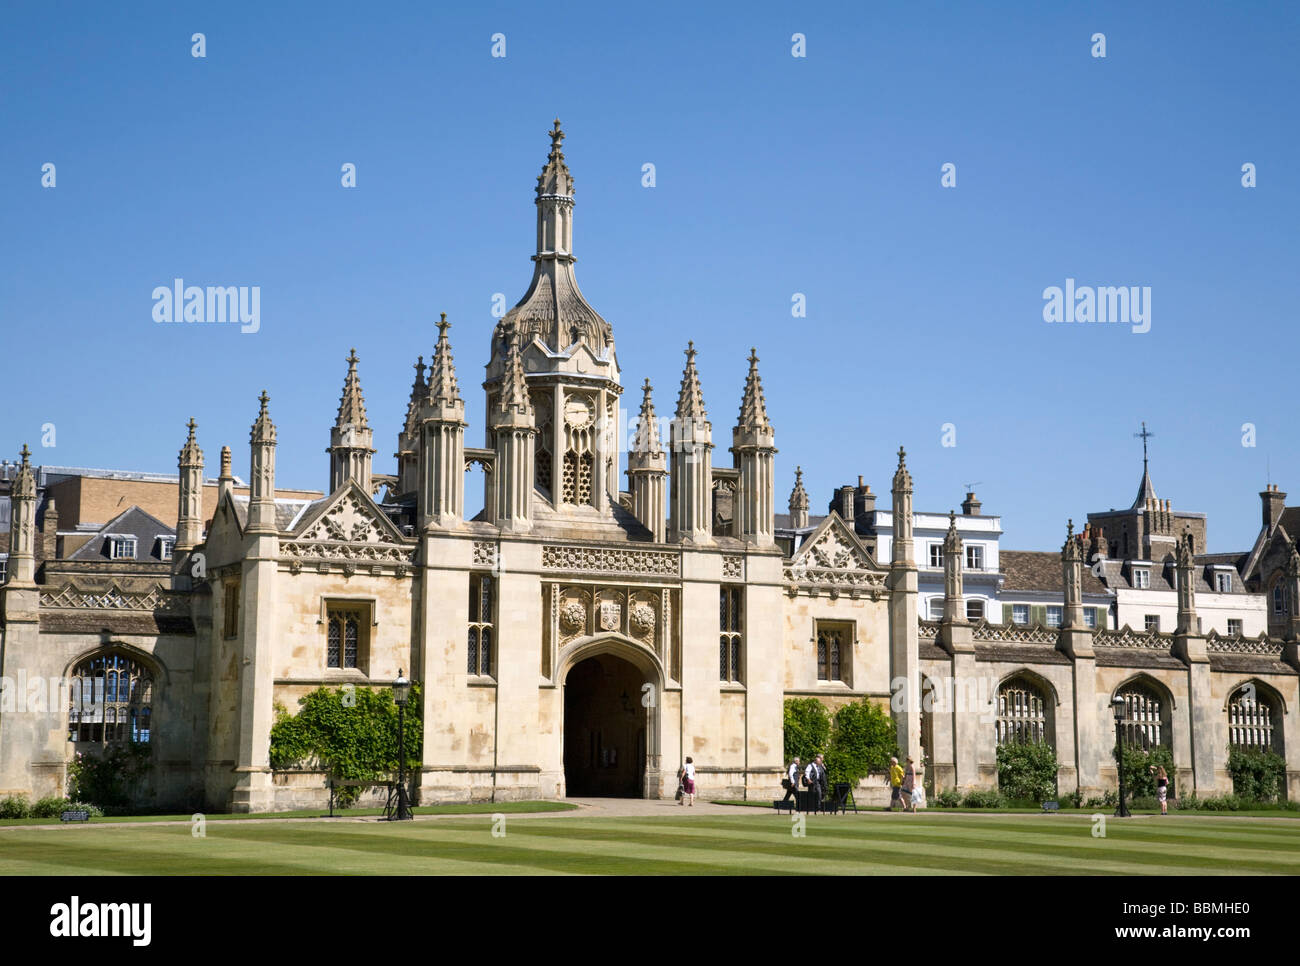 The entrance to Kings College, Cambridge UK - Stock Image